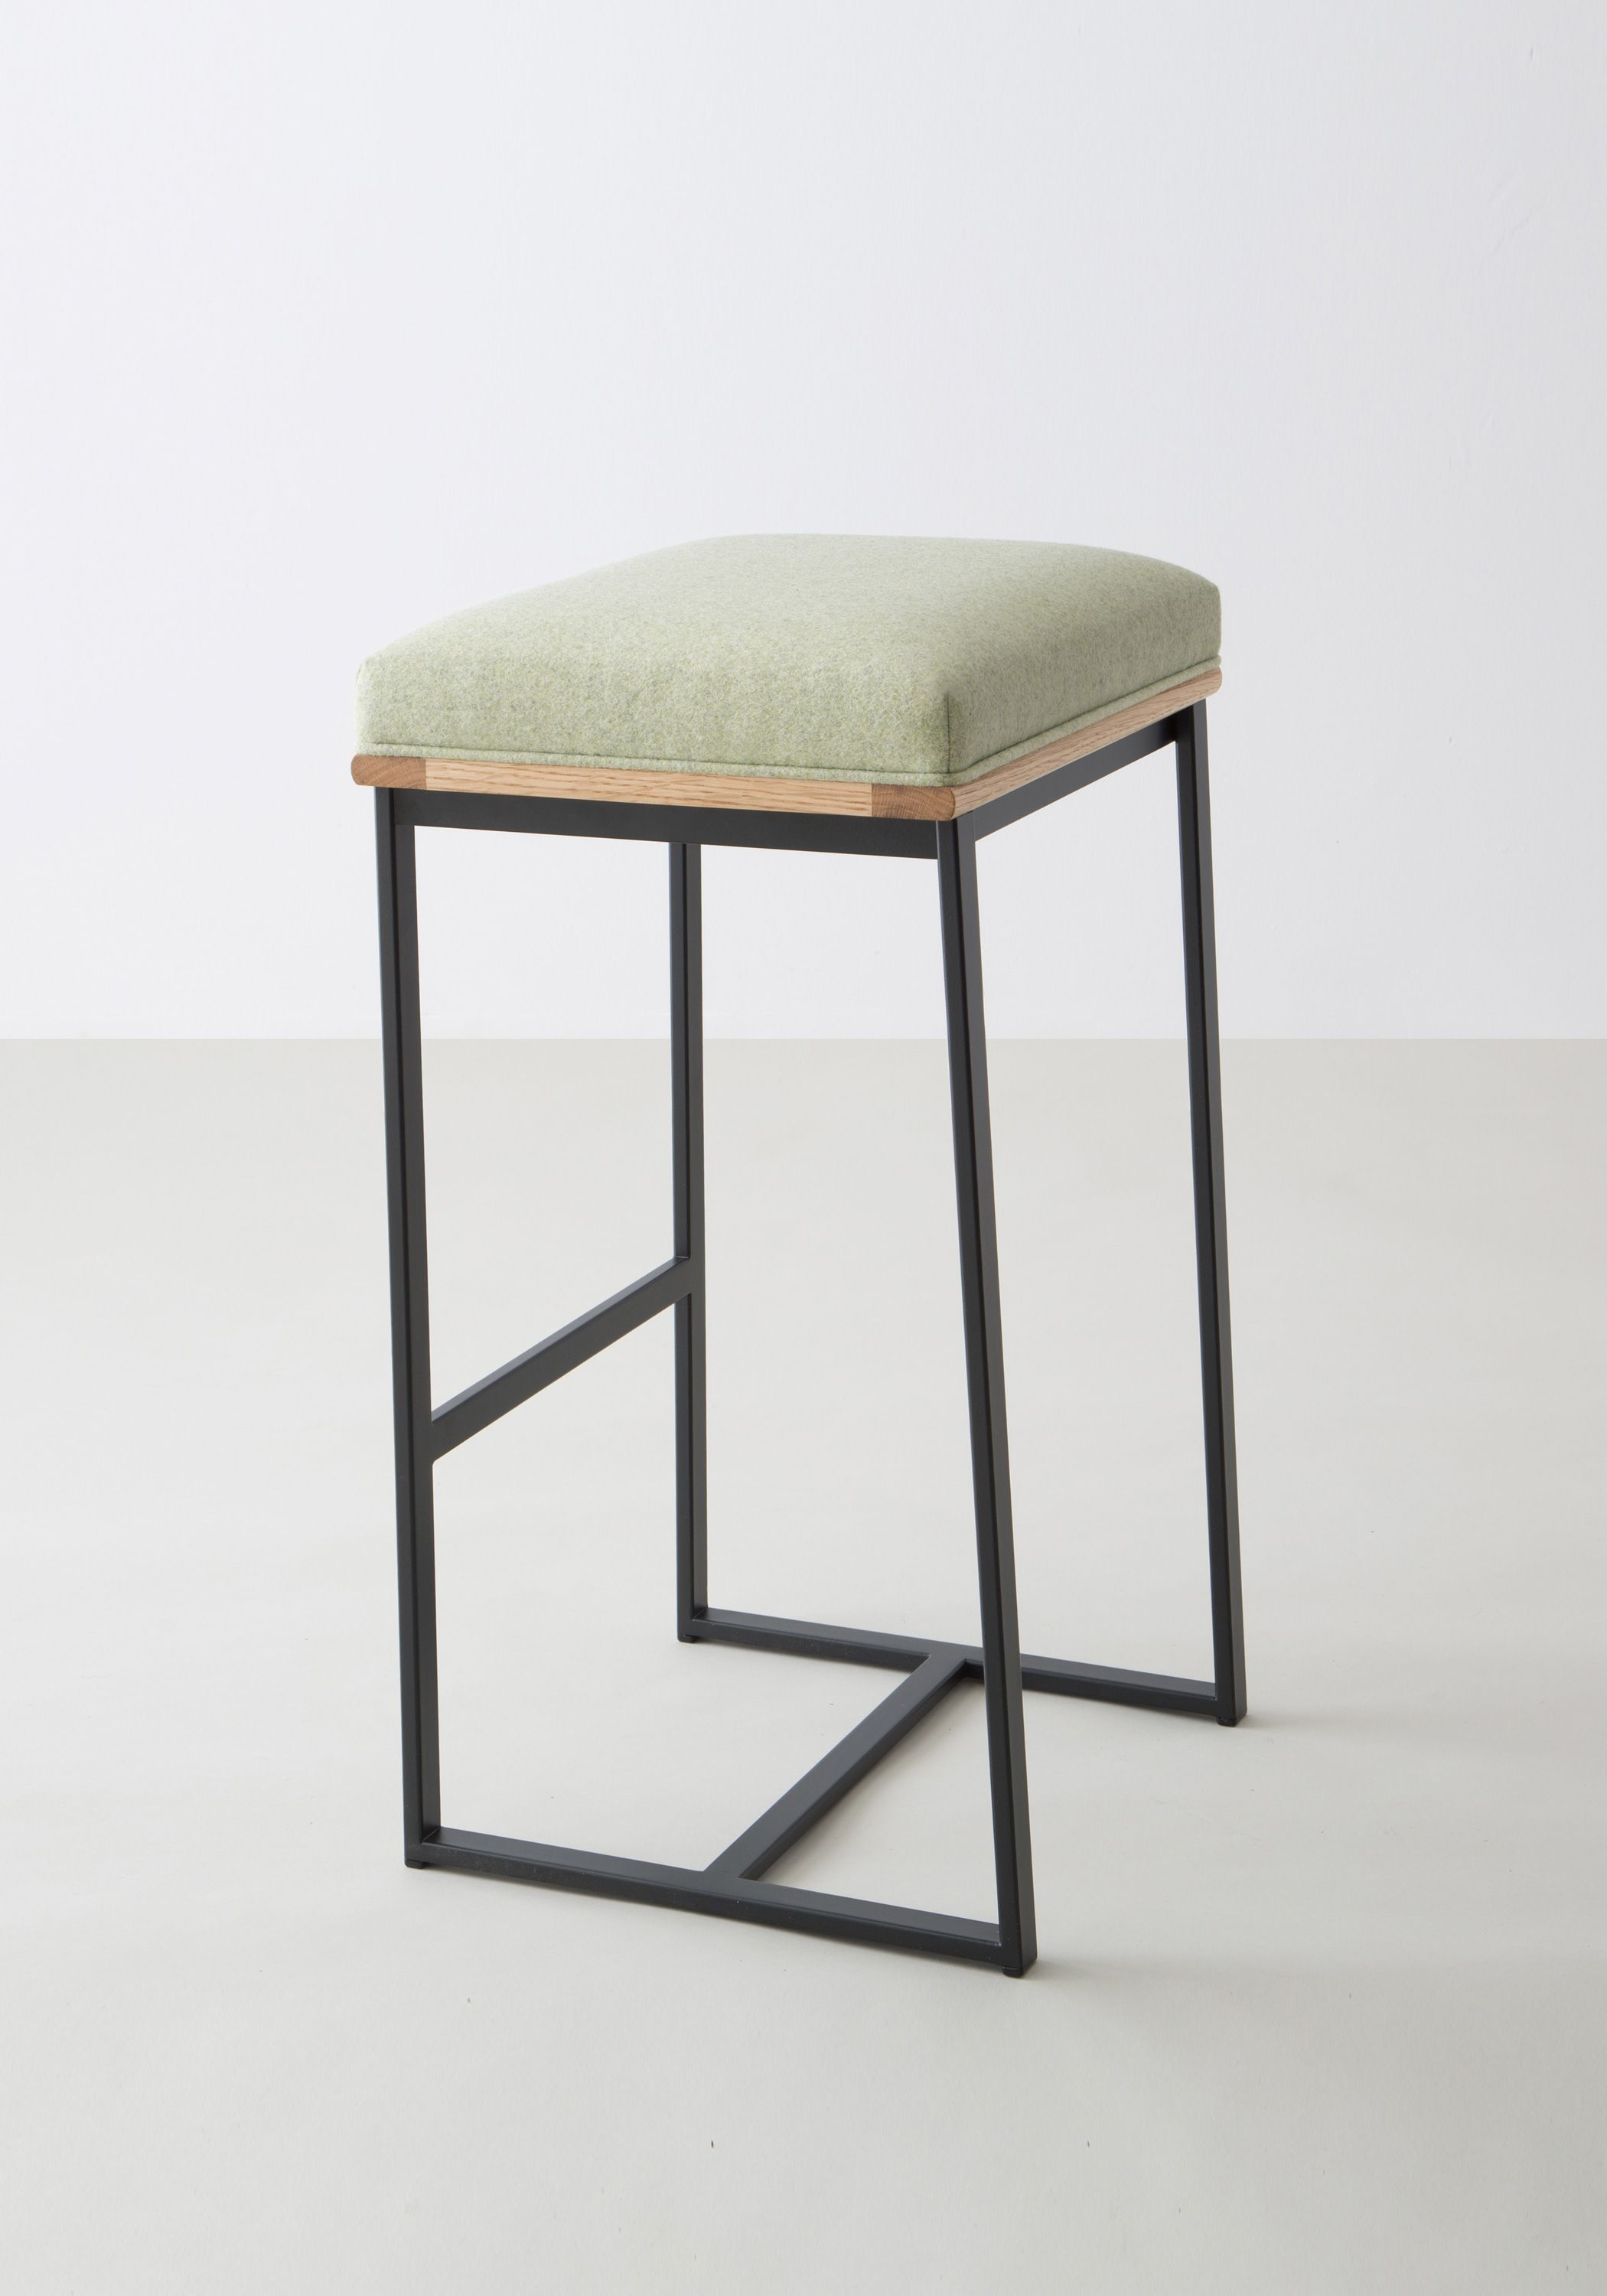 Swell Finding Formality And Comfort In The Industrial And Organic Bralicious Painted Fabric Chair Ideas Braliciousco